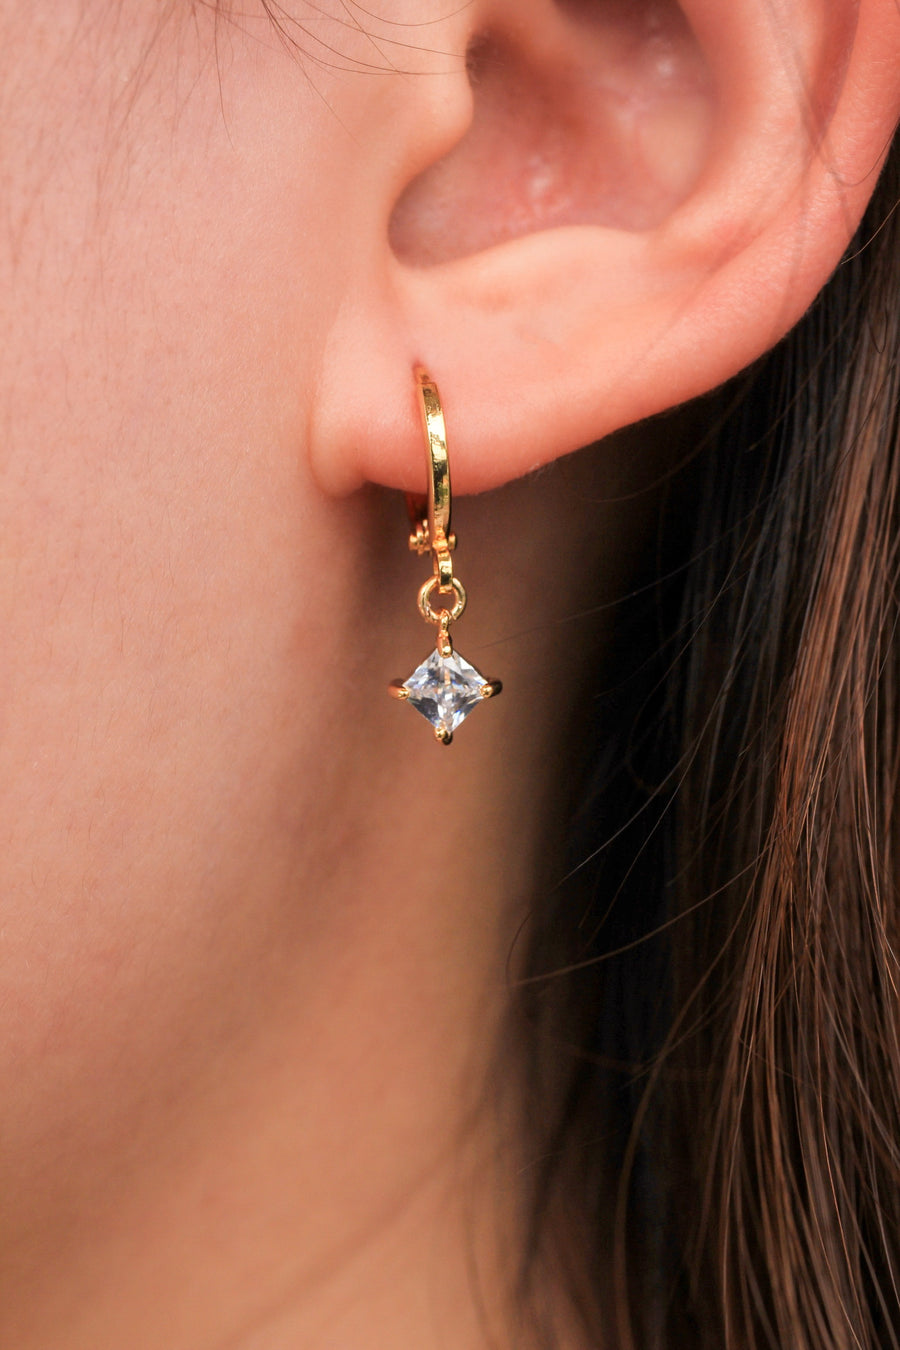 Personalised Earrings - Diamond